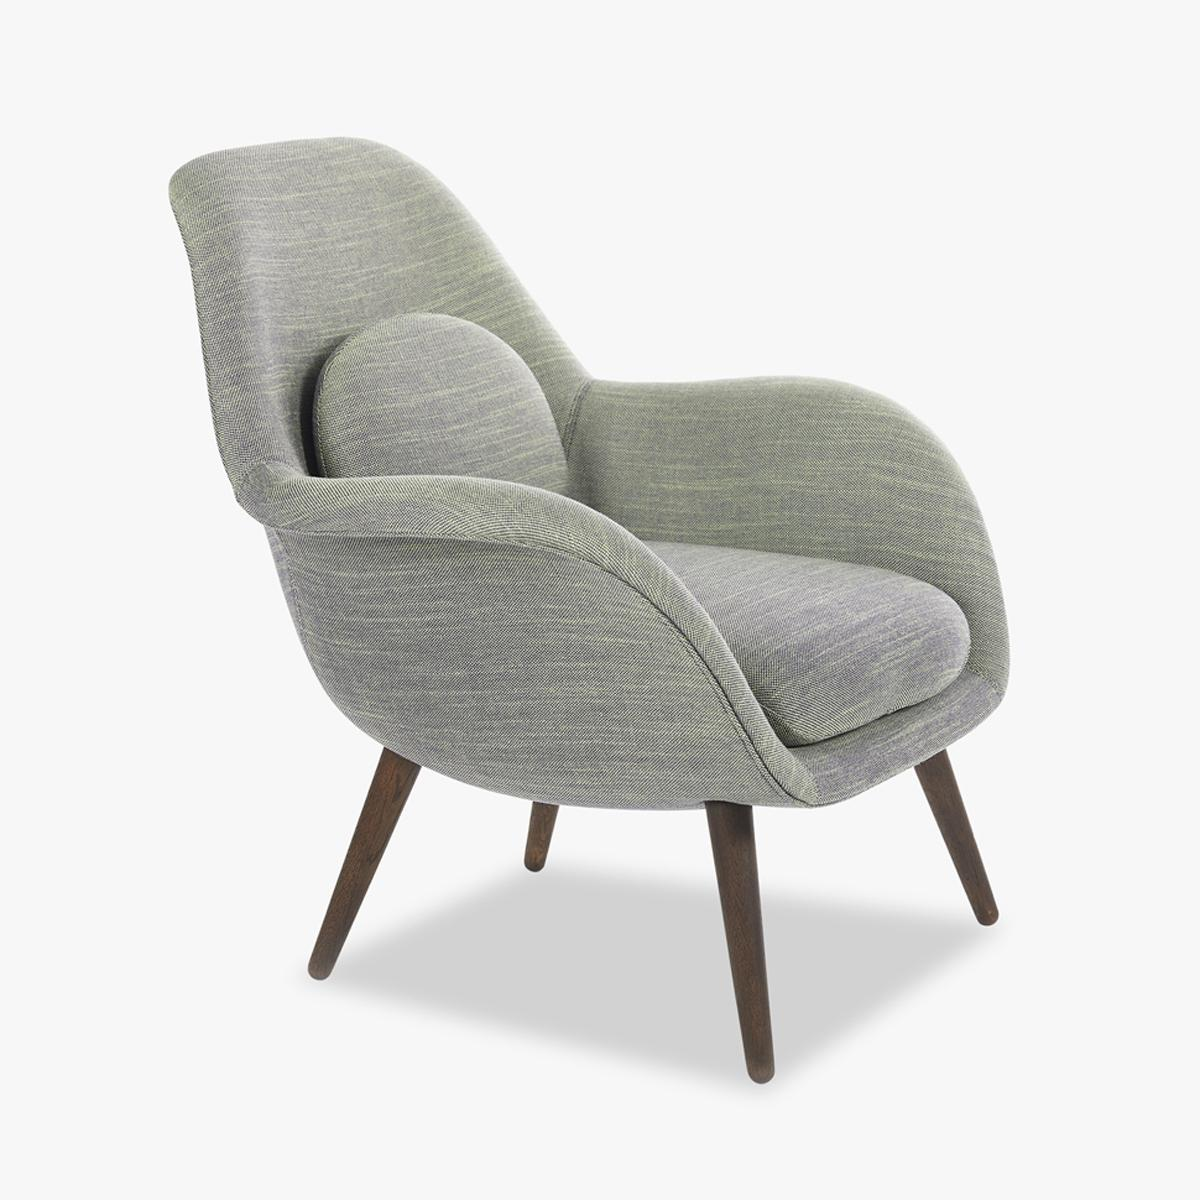 swoon-lounge-petit-smoked-oak-fabric-2